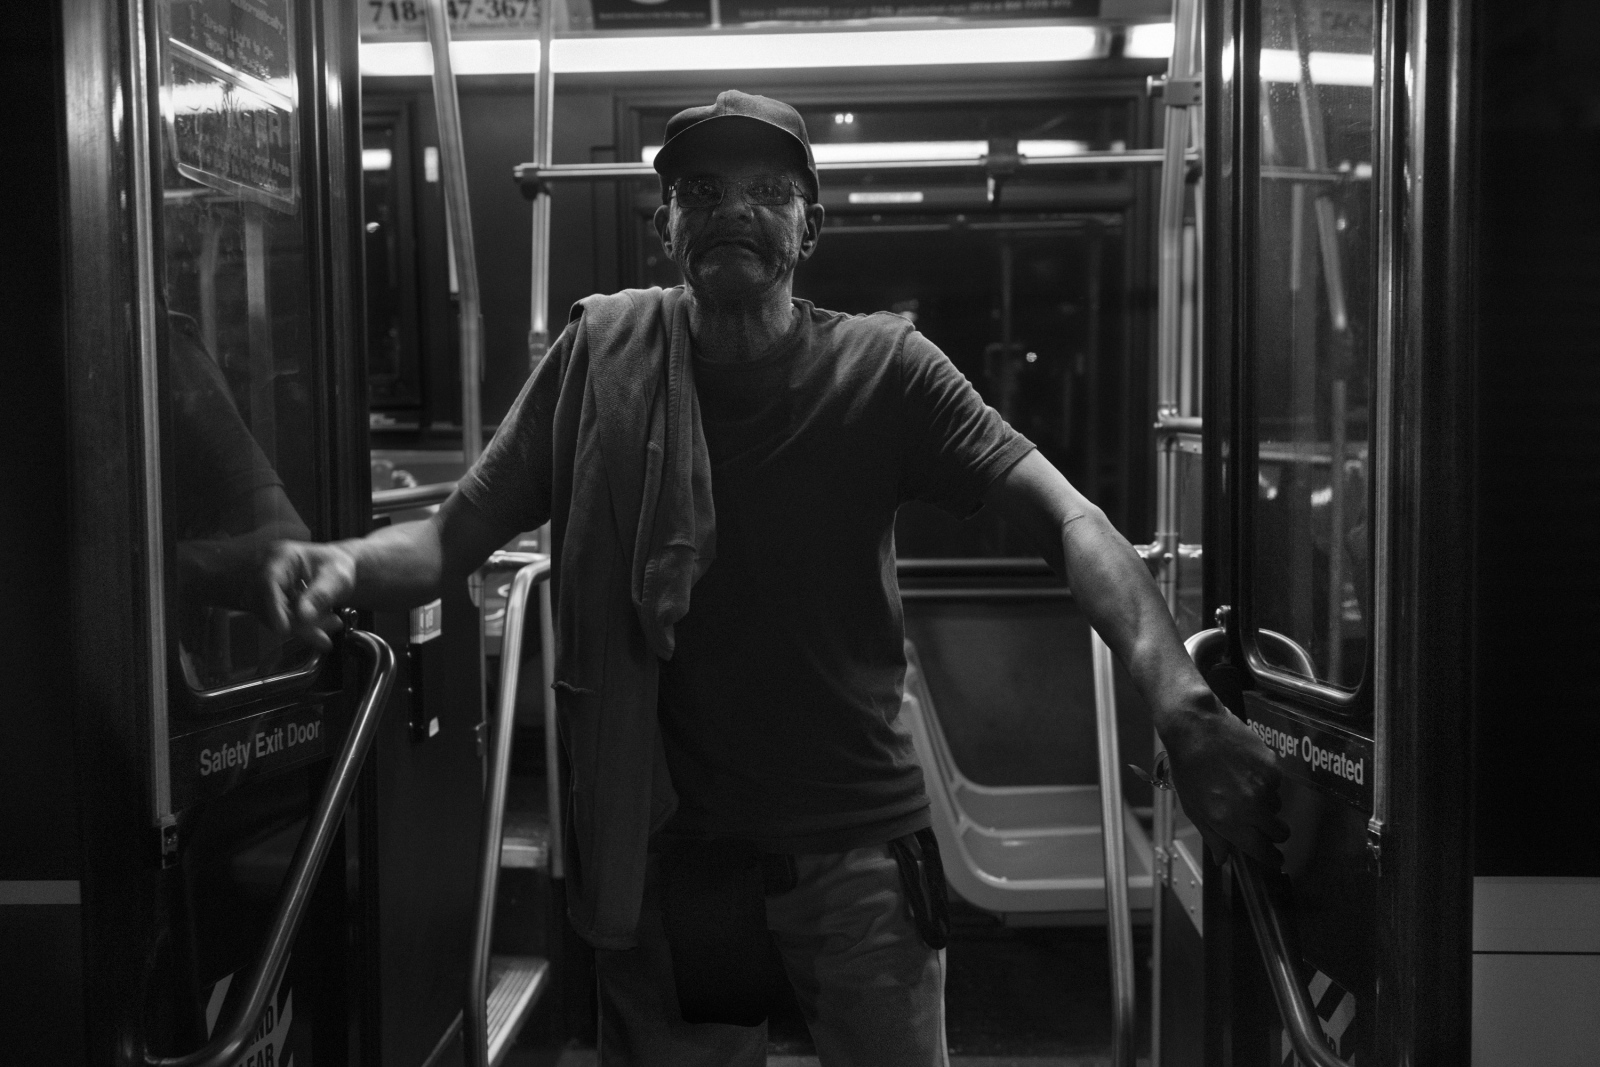 Alvin Jeffires, 65, gets off the Q100 bus on the night of his release from Rikers Island after trying to recover his property. A Vietnam veteran, Alvin retired in New York after the war and lived from his army pension until one day he was wrongfully arrested after being mistakenly arrested by the NYPD. August 18th, 2016.